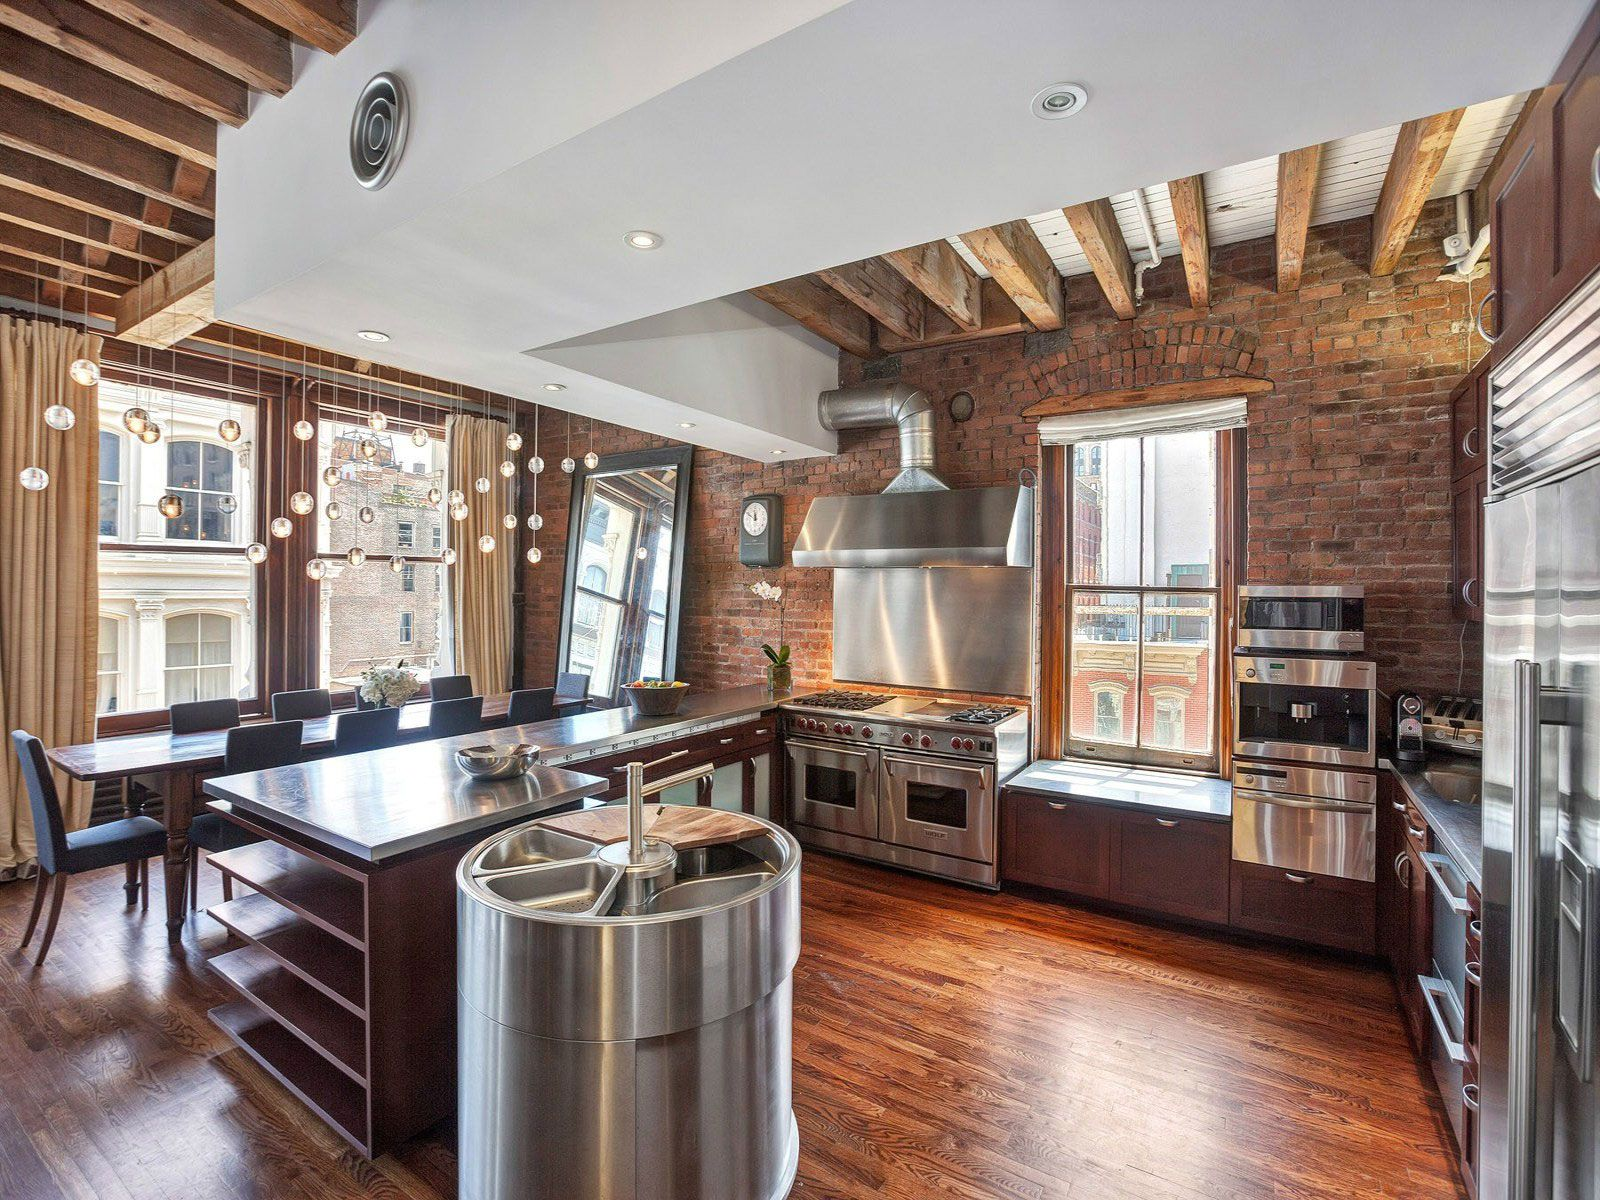 Superior ... Ultimate Soho Exposed Brick And Wood Beams Loft On Prince Street In New  York 05 ...